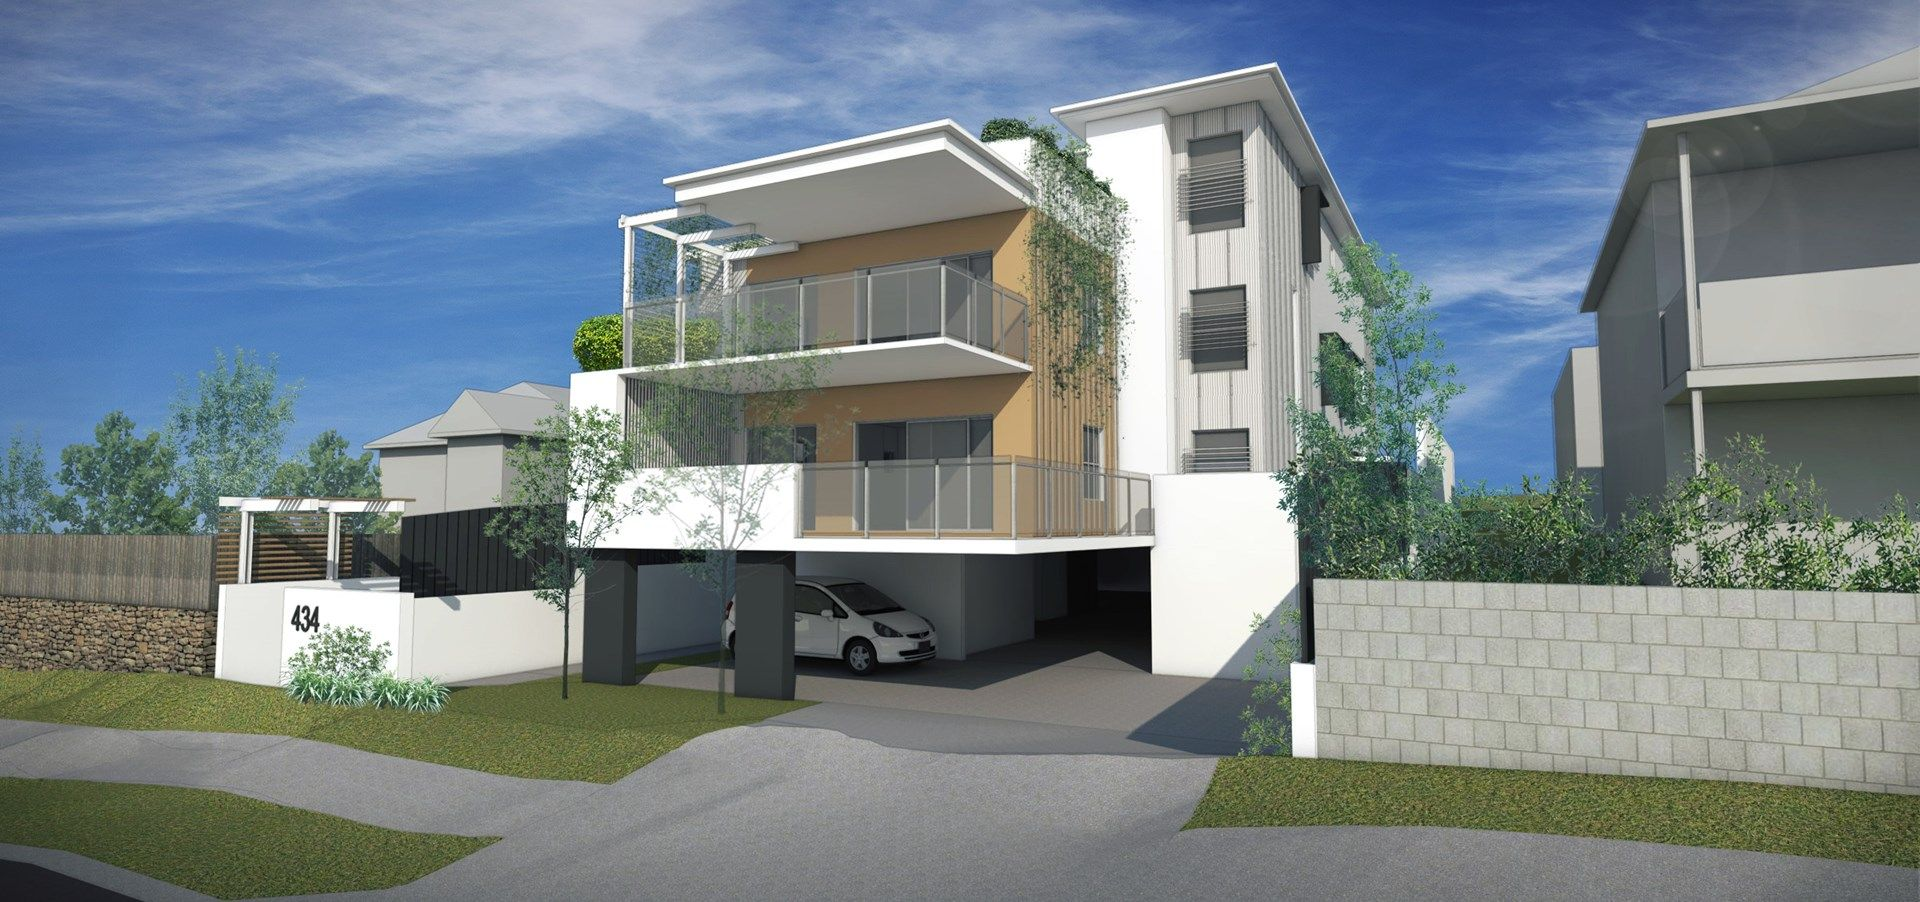 434 South Pine Road, Everton Park QLD 4053, Image 0